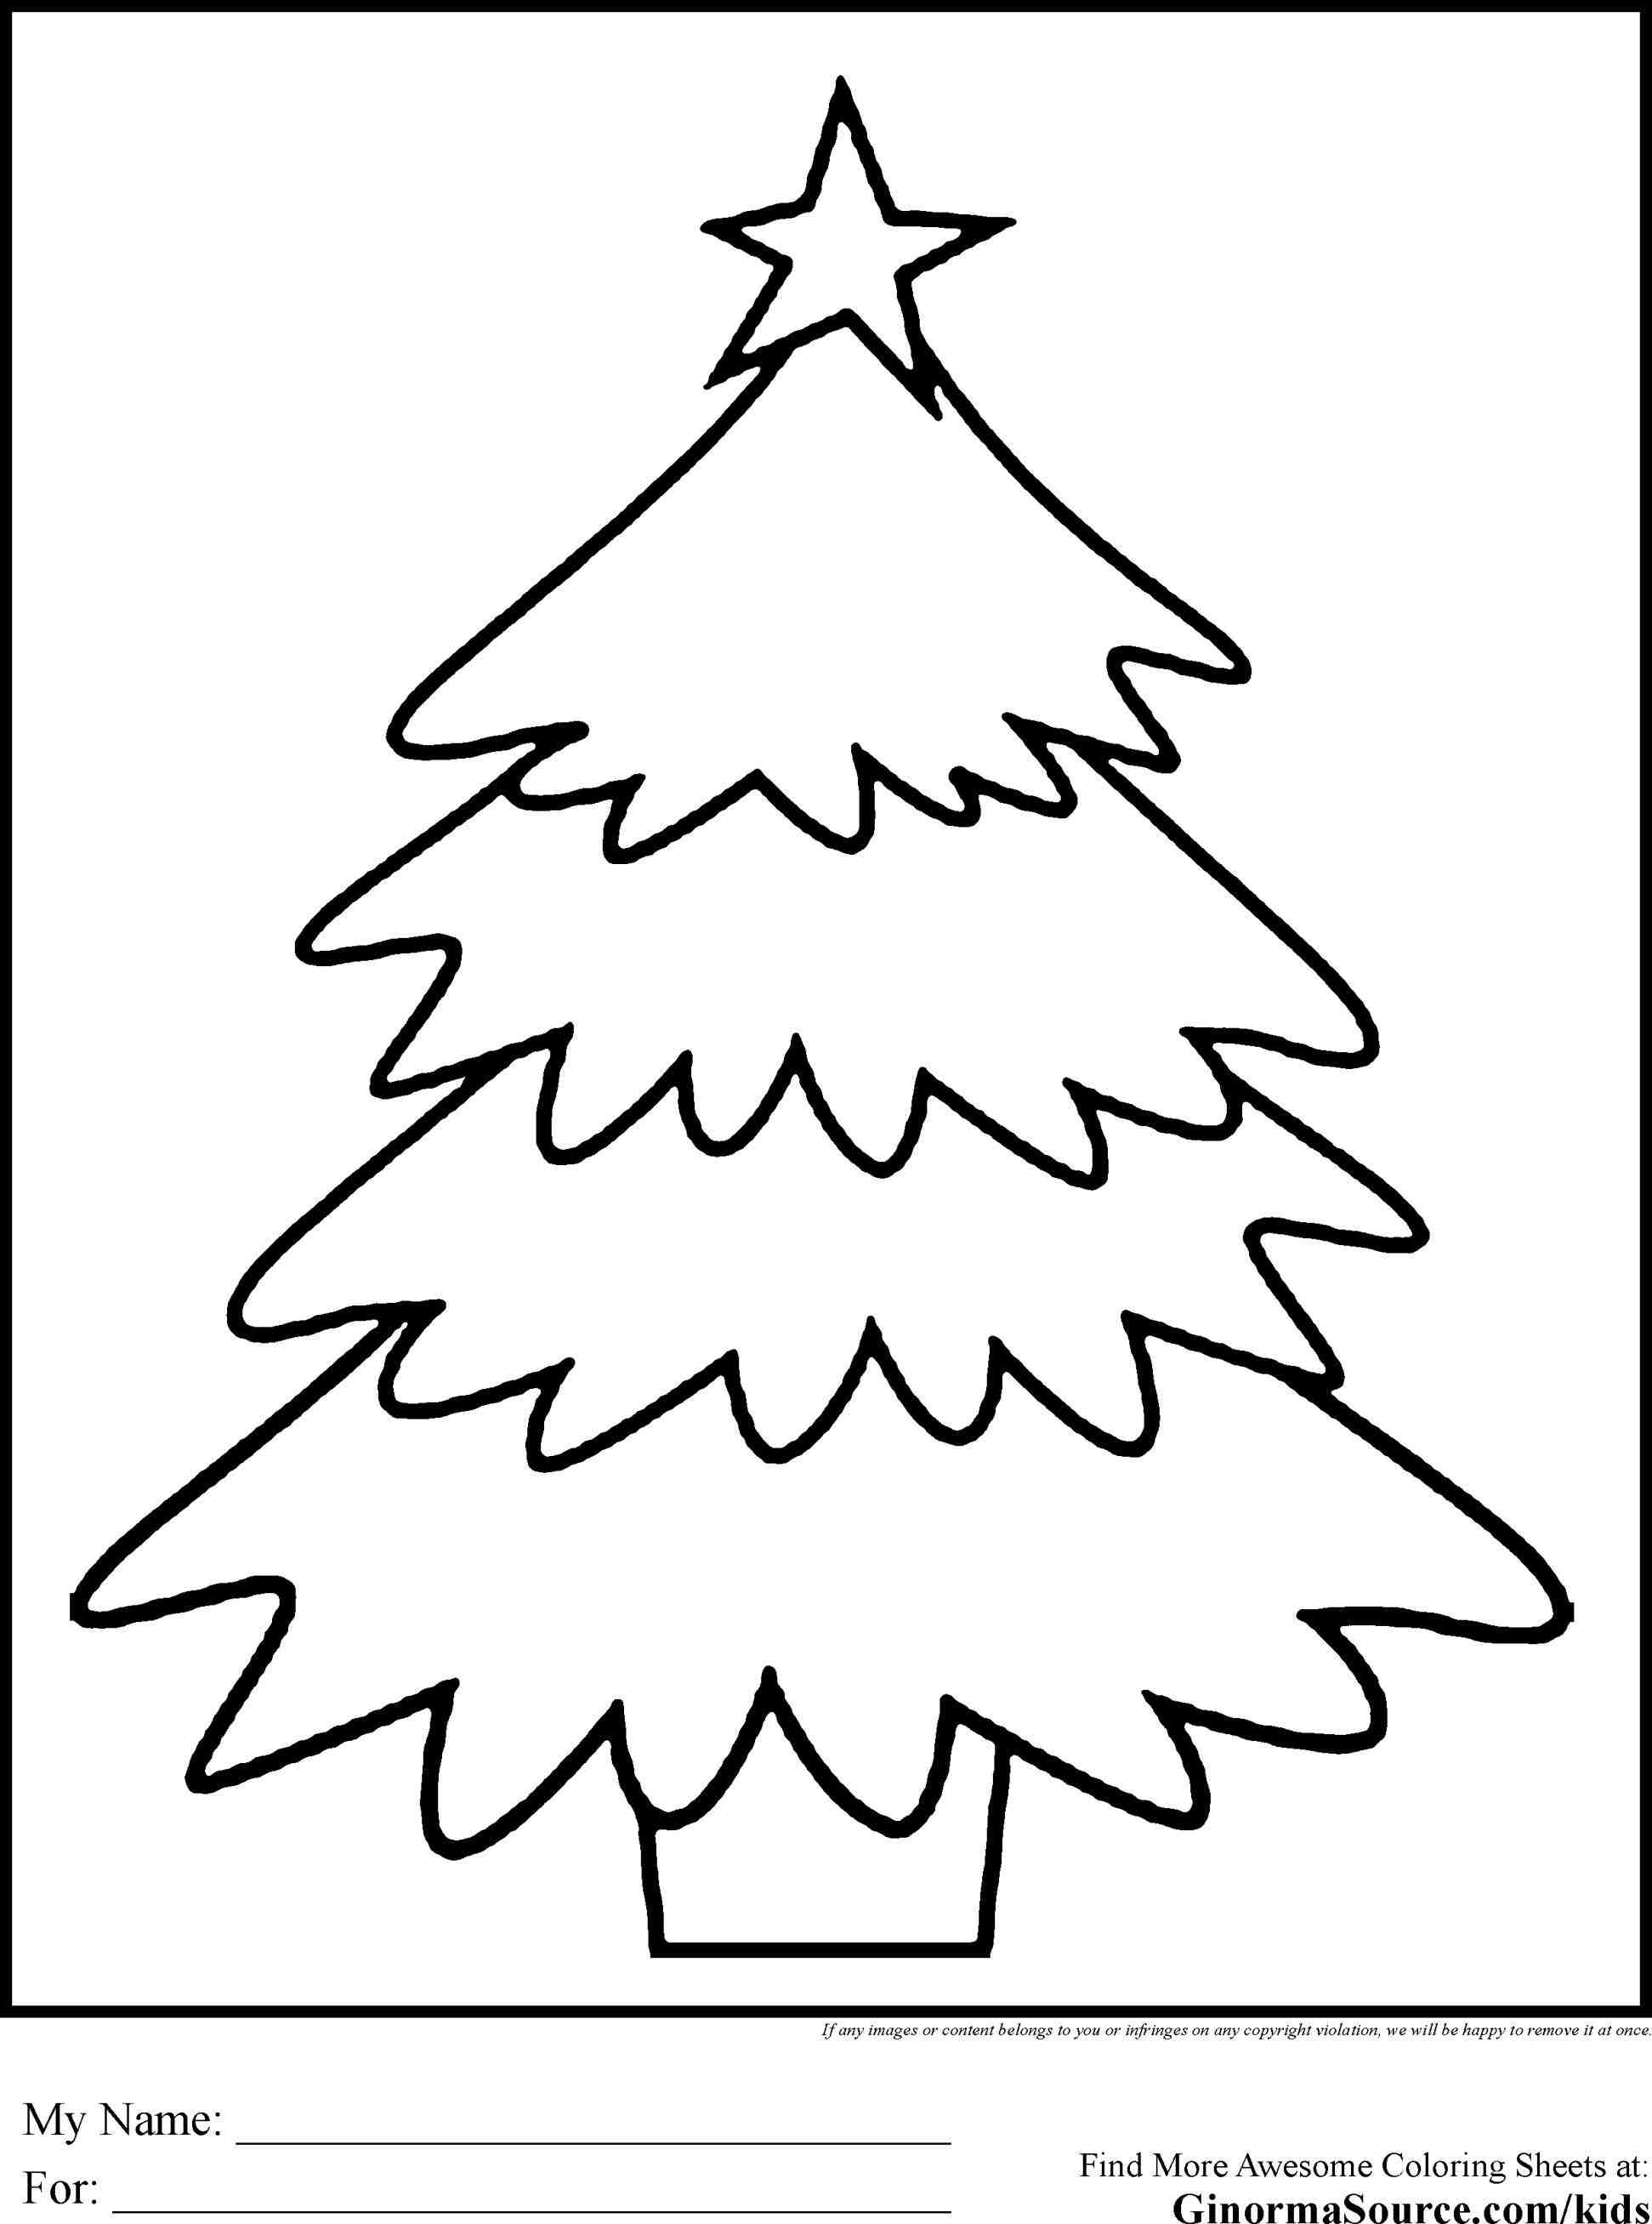 how to draw pine trees step by step how to draw realistic pine trees step by step arcmelcom pine how step by trees step draw to